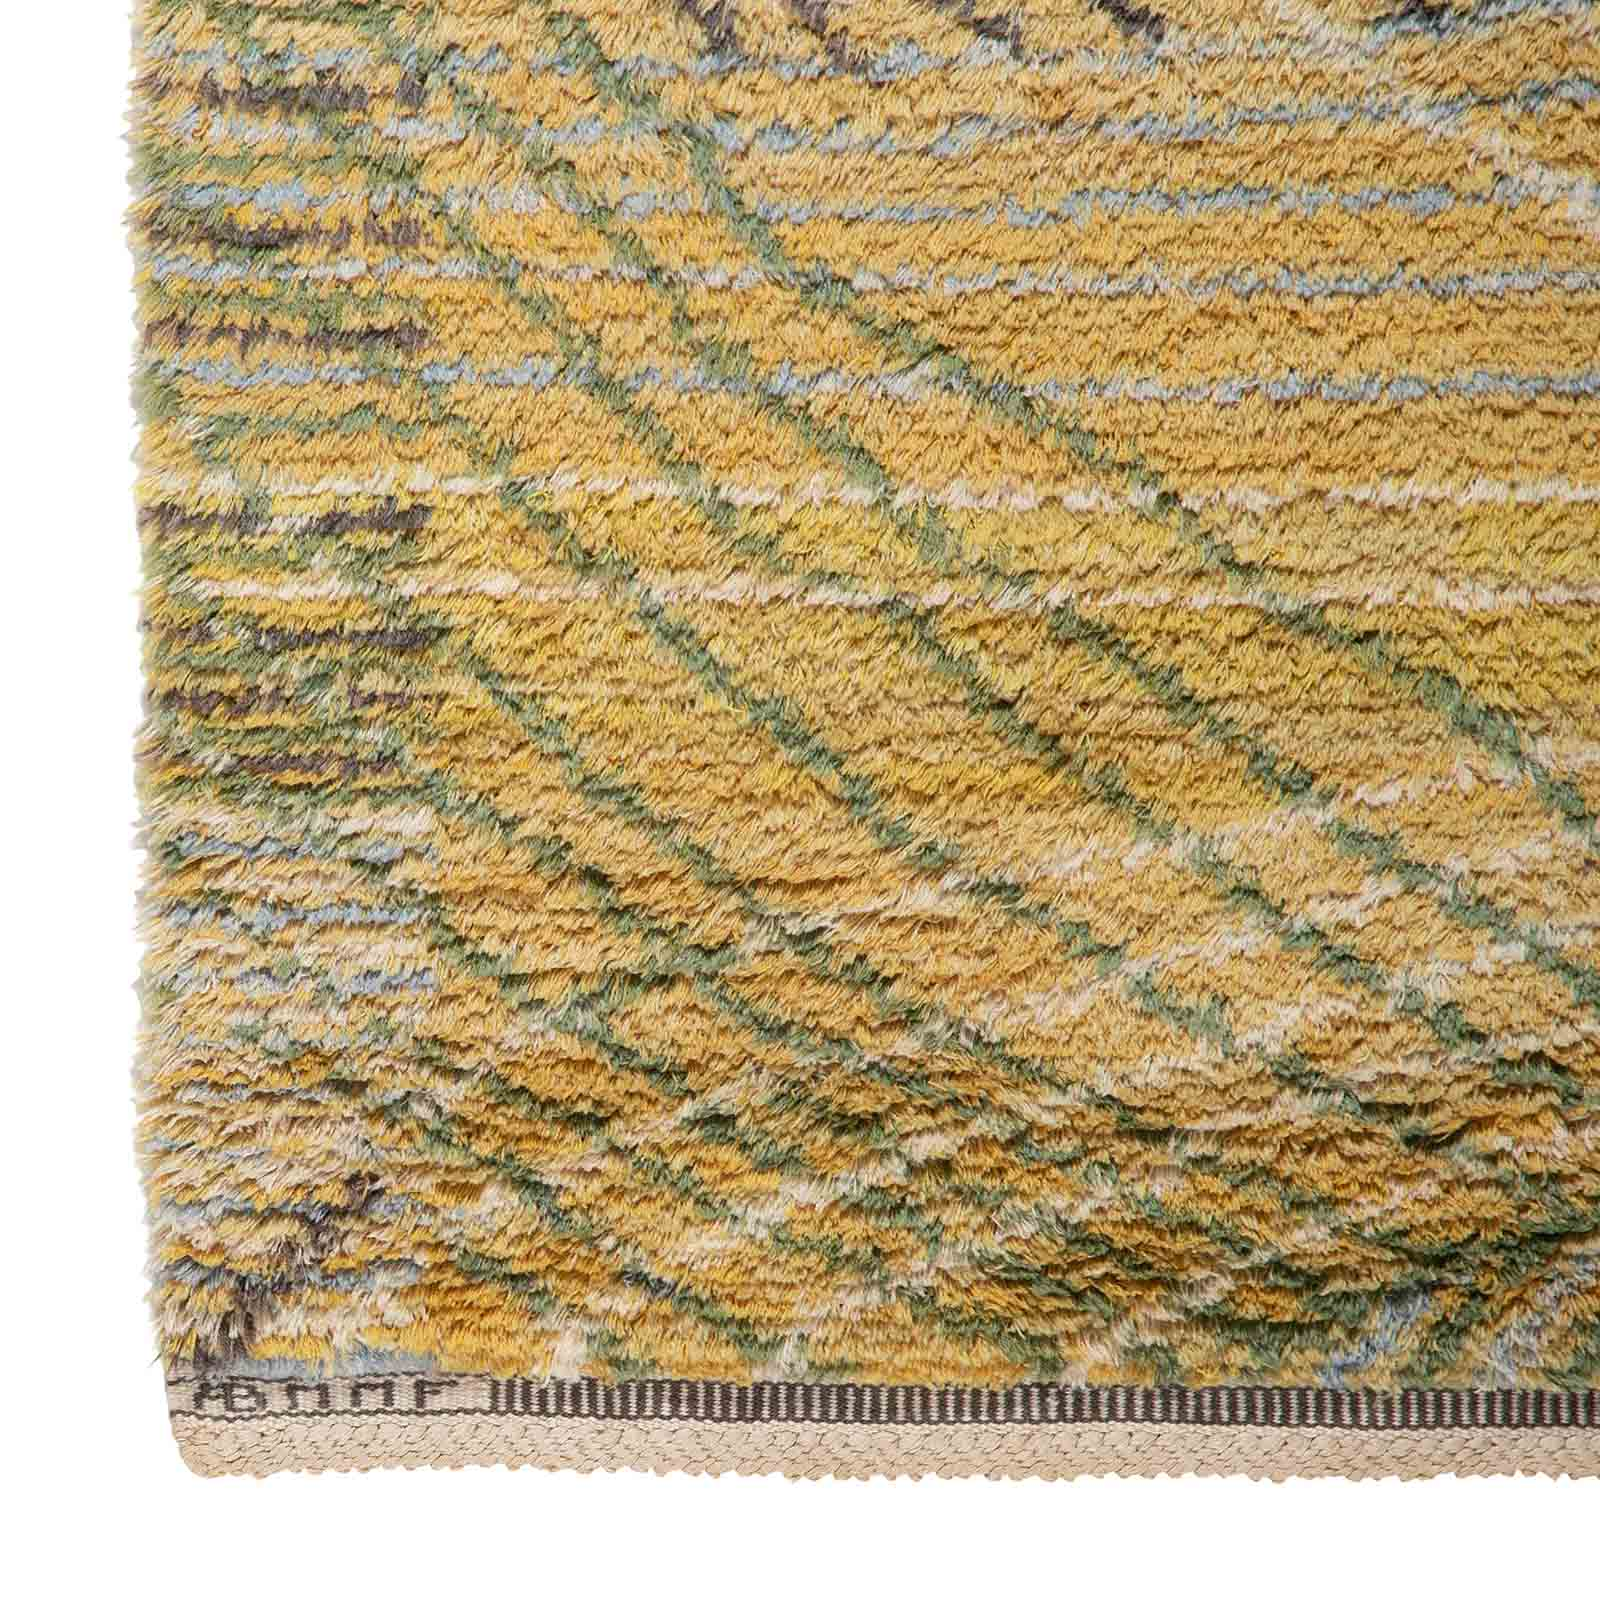 A rug, 'Marina, Yellow'